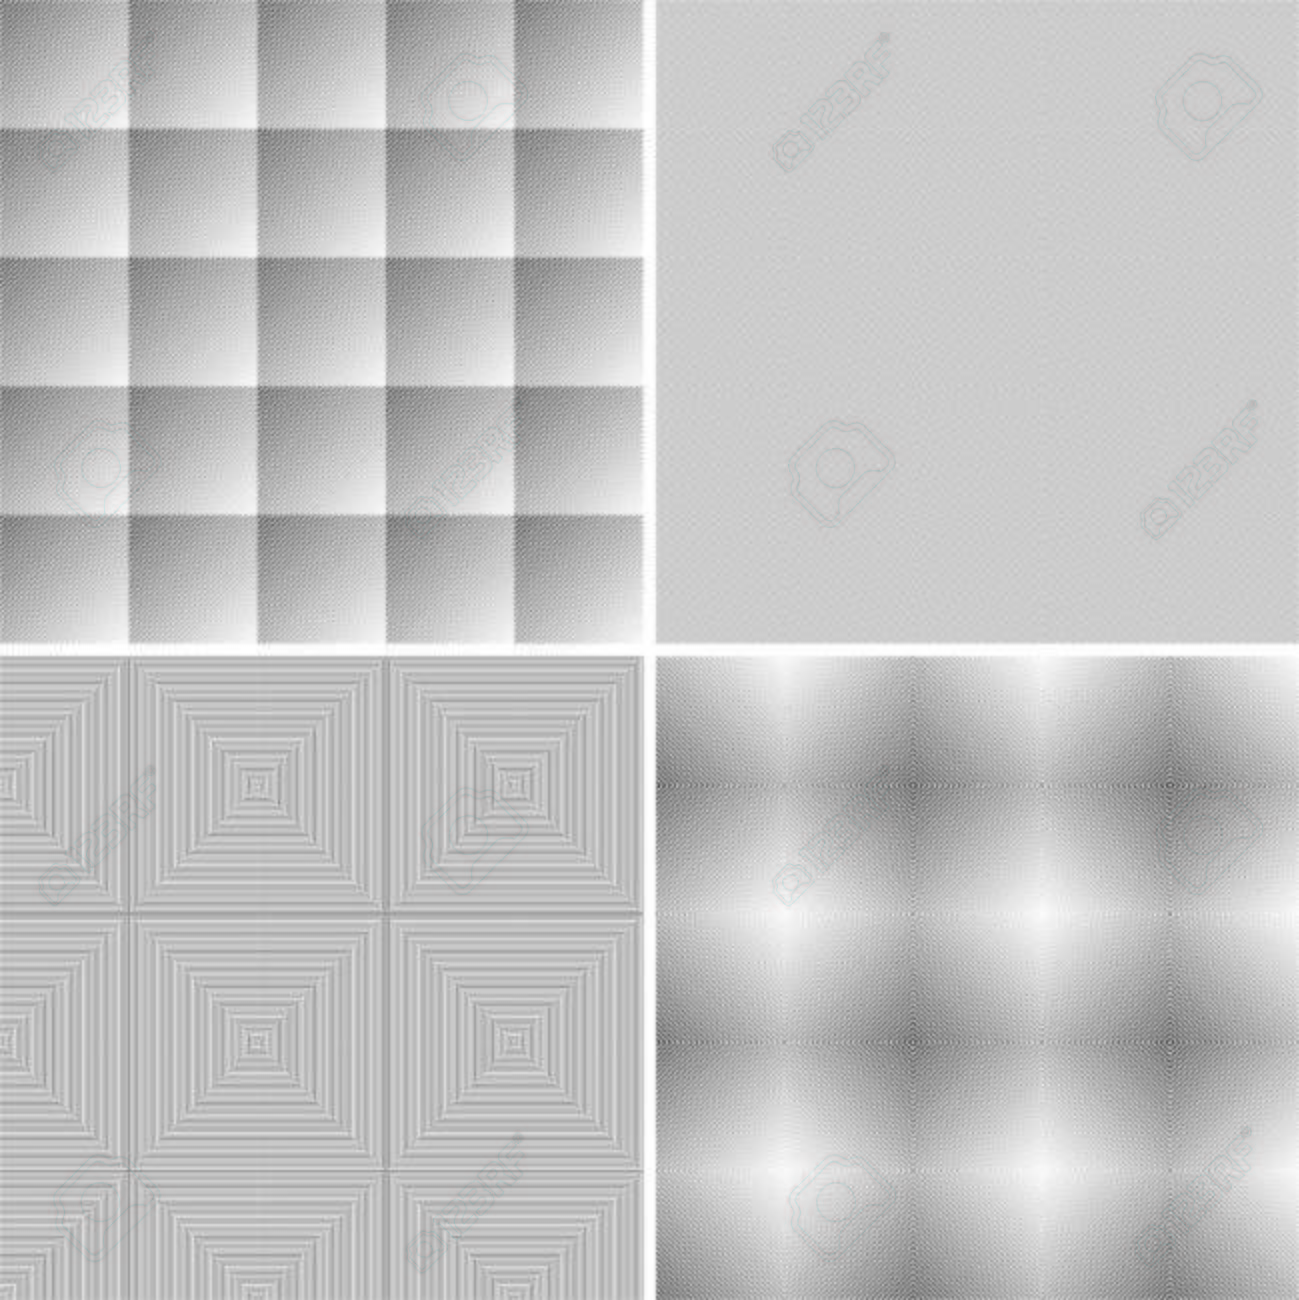 Abstract geometric background, gray and white graphics, vector Stock Vector - 5525148